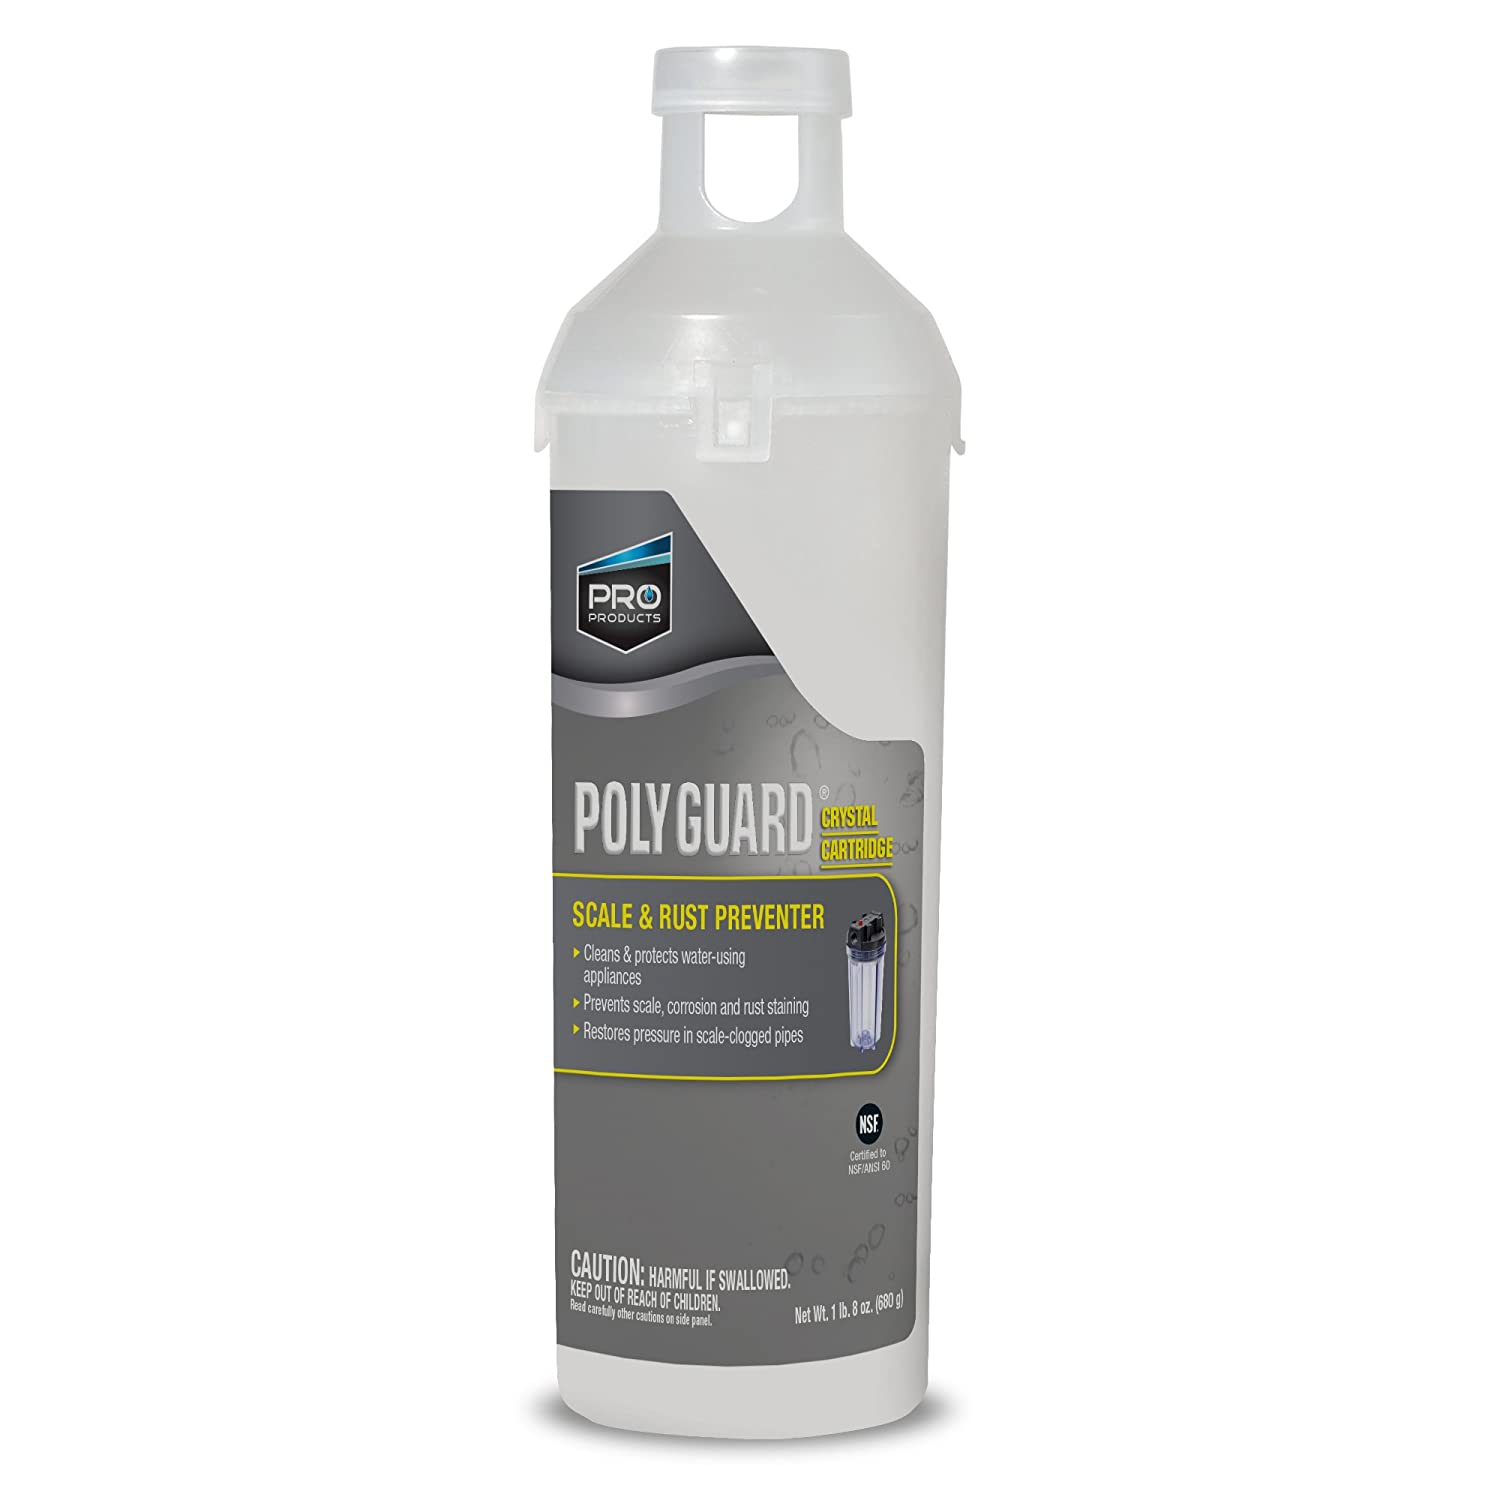 Poly Guard GP10C System Replacement Cartridge, Scale & Rust Preventer, Up To 6 Month Supply